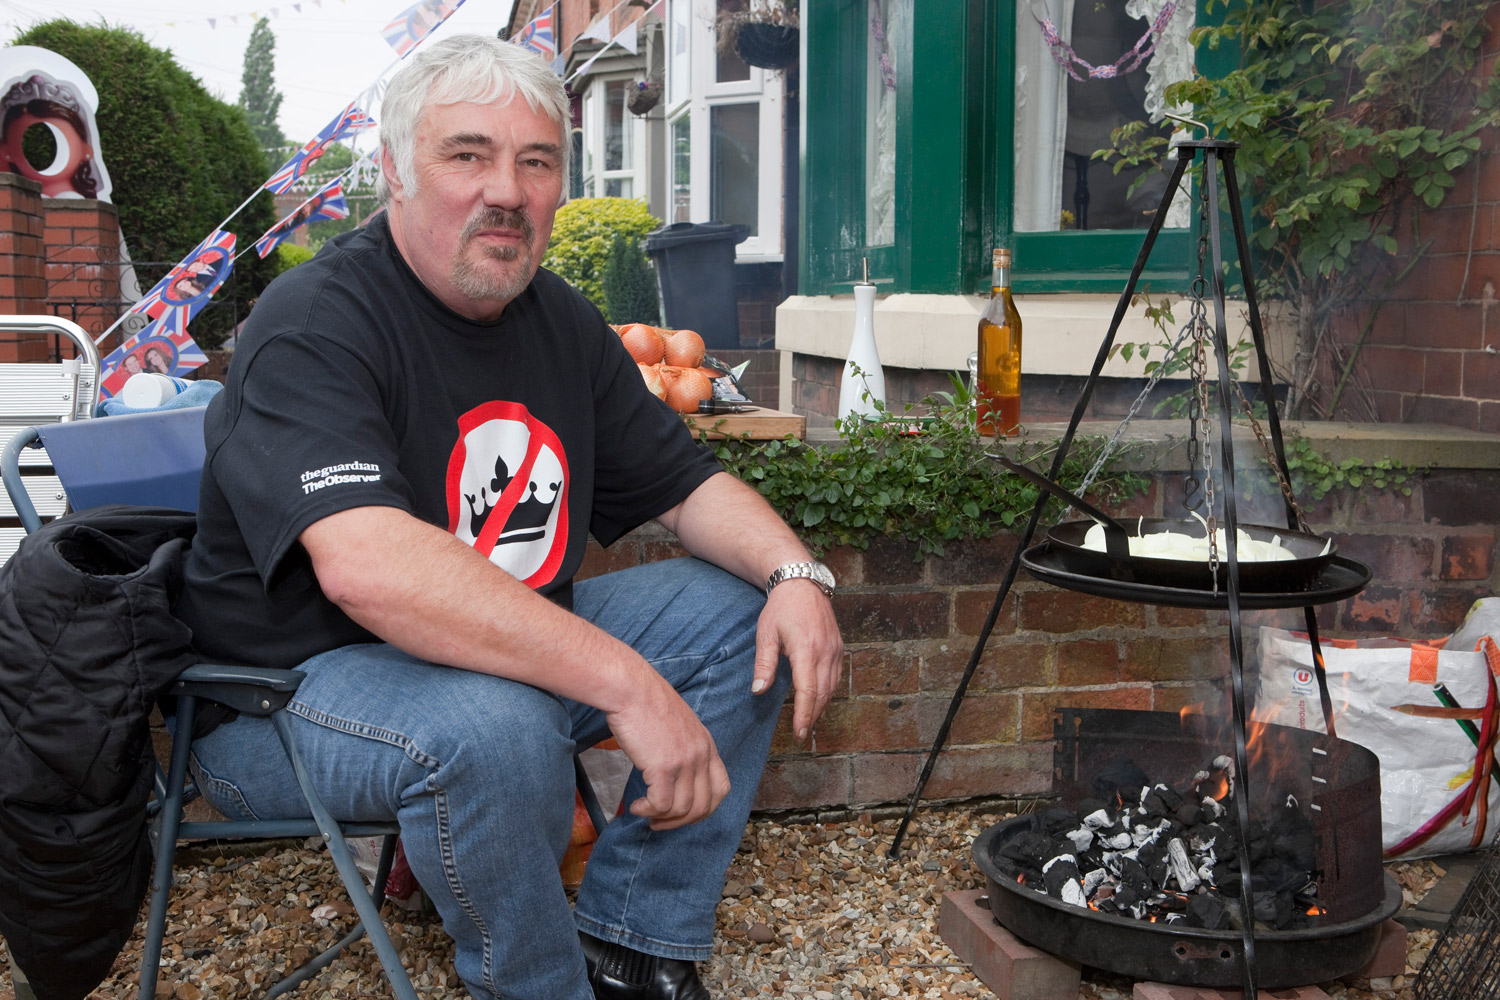 An anti-royal fan enjoying a barbecue in the back country of England.